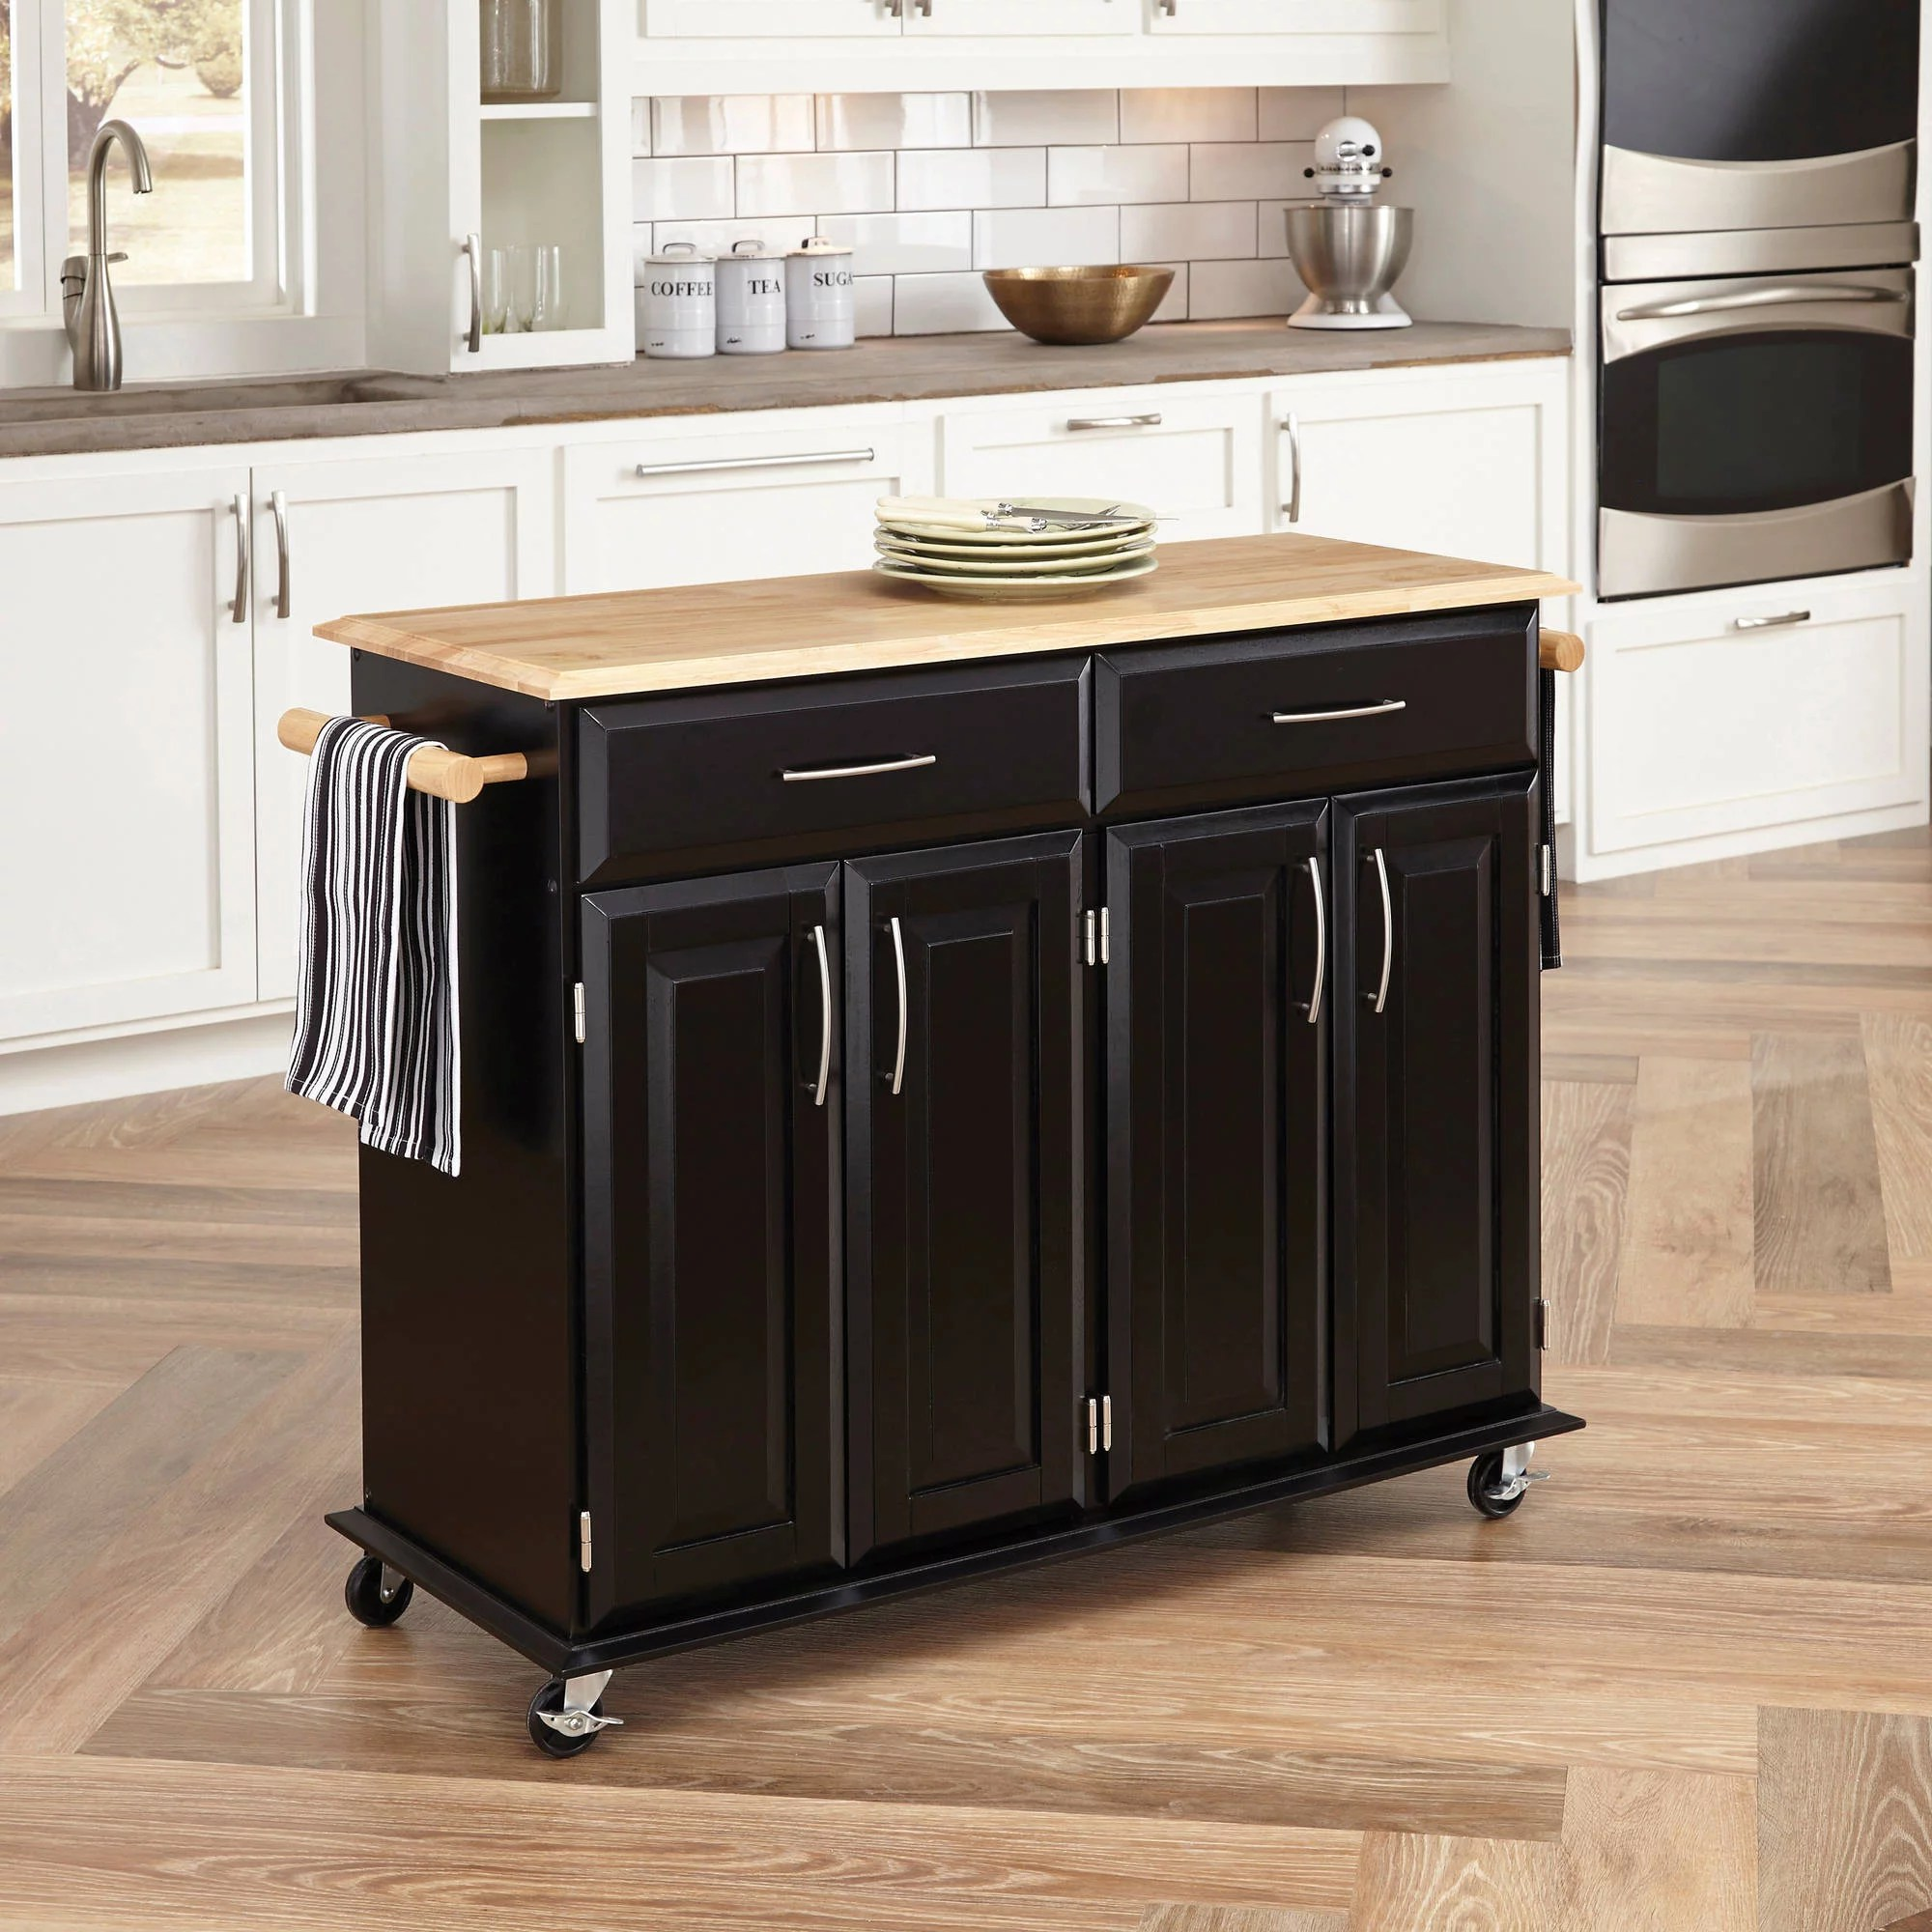 small ideas with floor white countertop chic using styles elegant how glossy ceramic black island monarch plan for kitchen to home